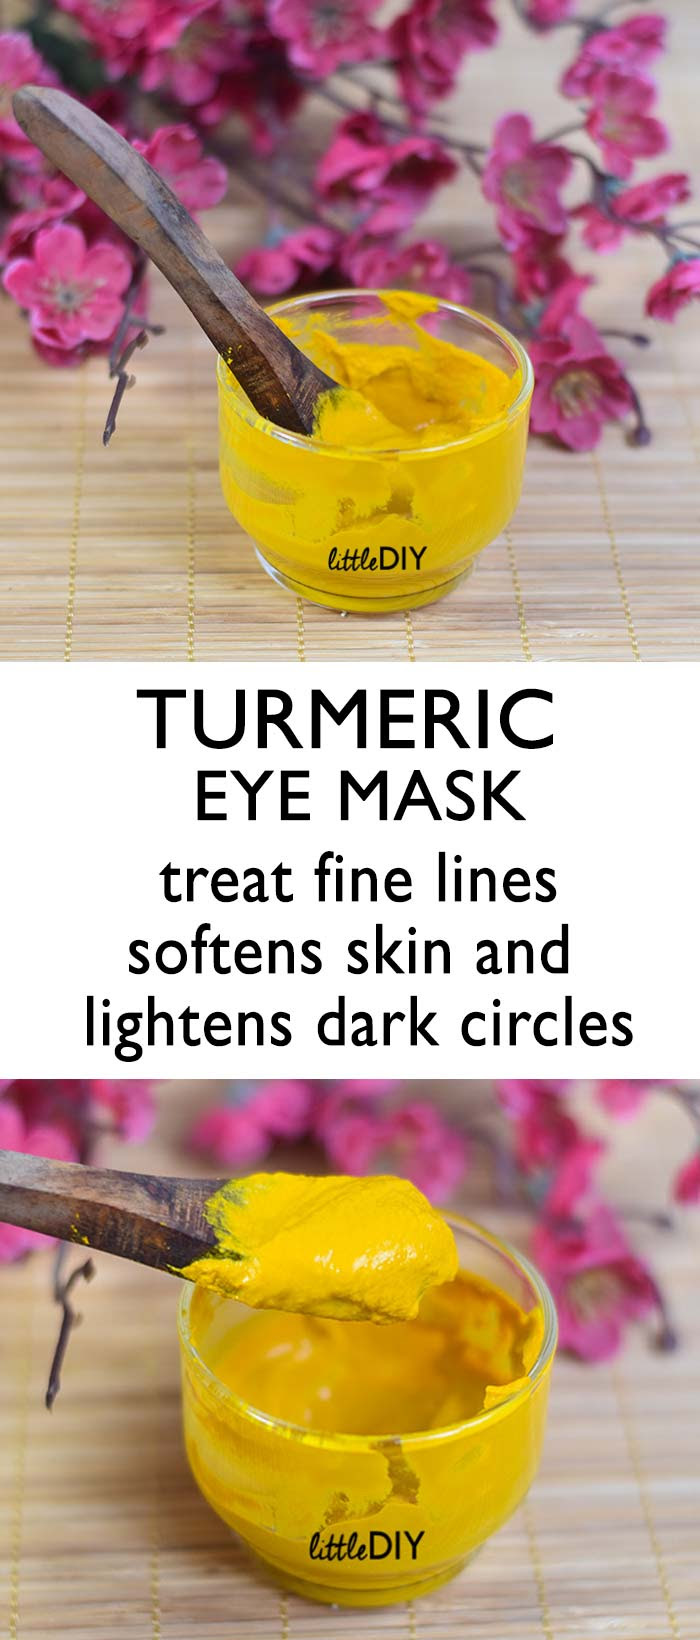 GET RID OF DARK CIRCLES WITH TURMERIC - LITTLE DIY